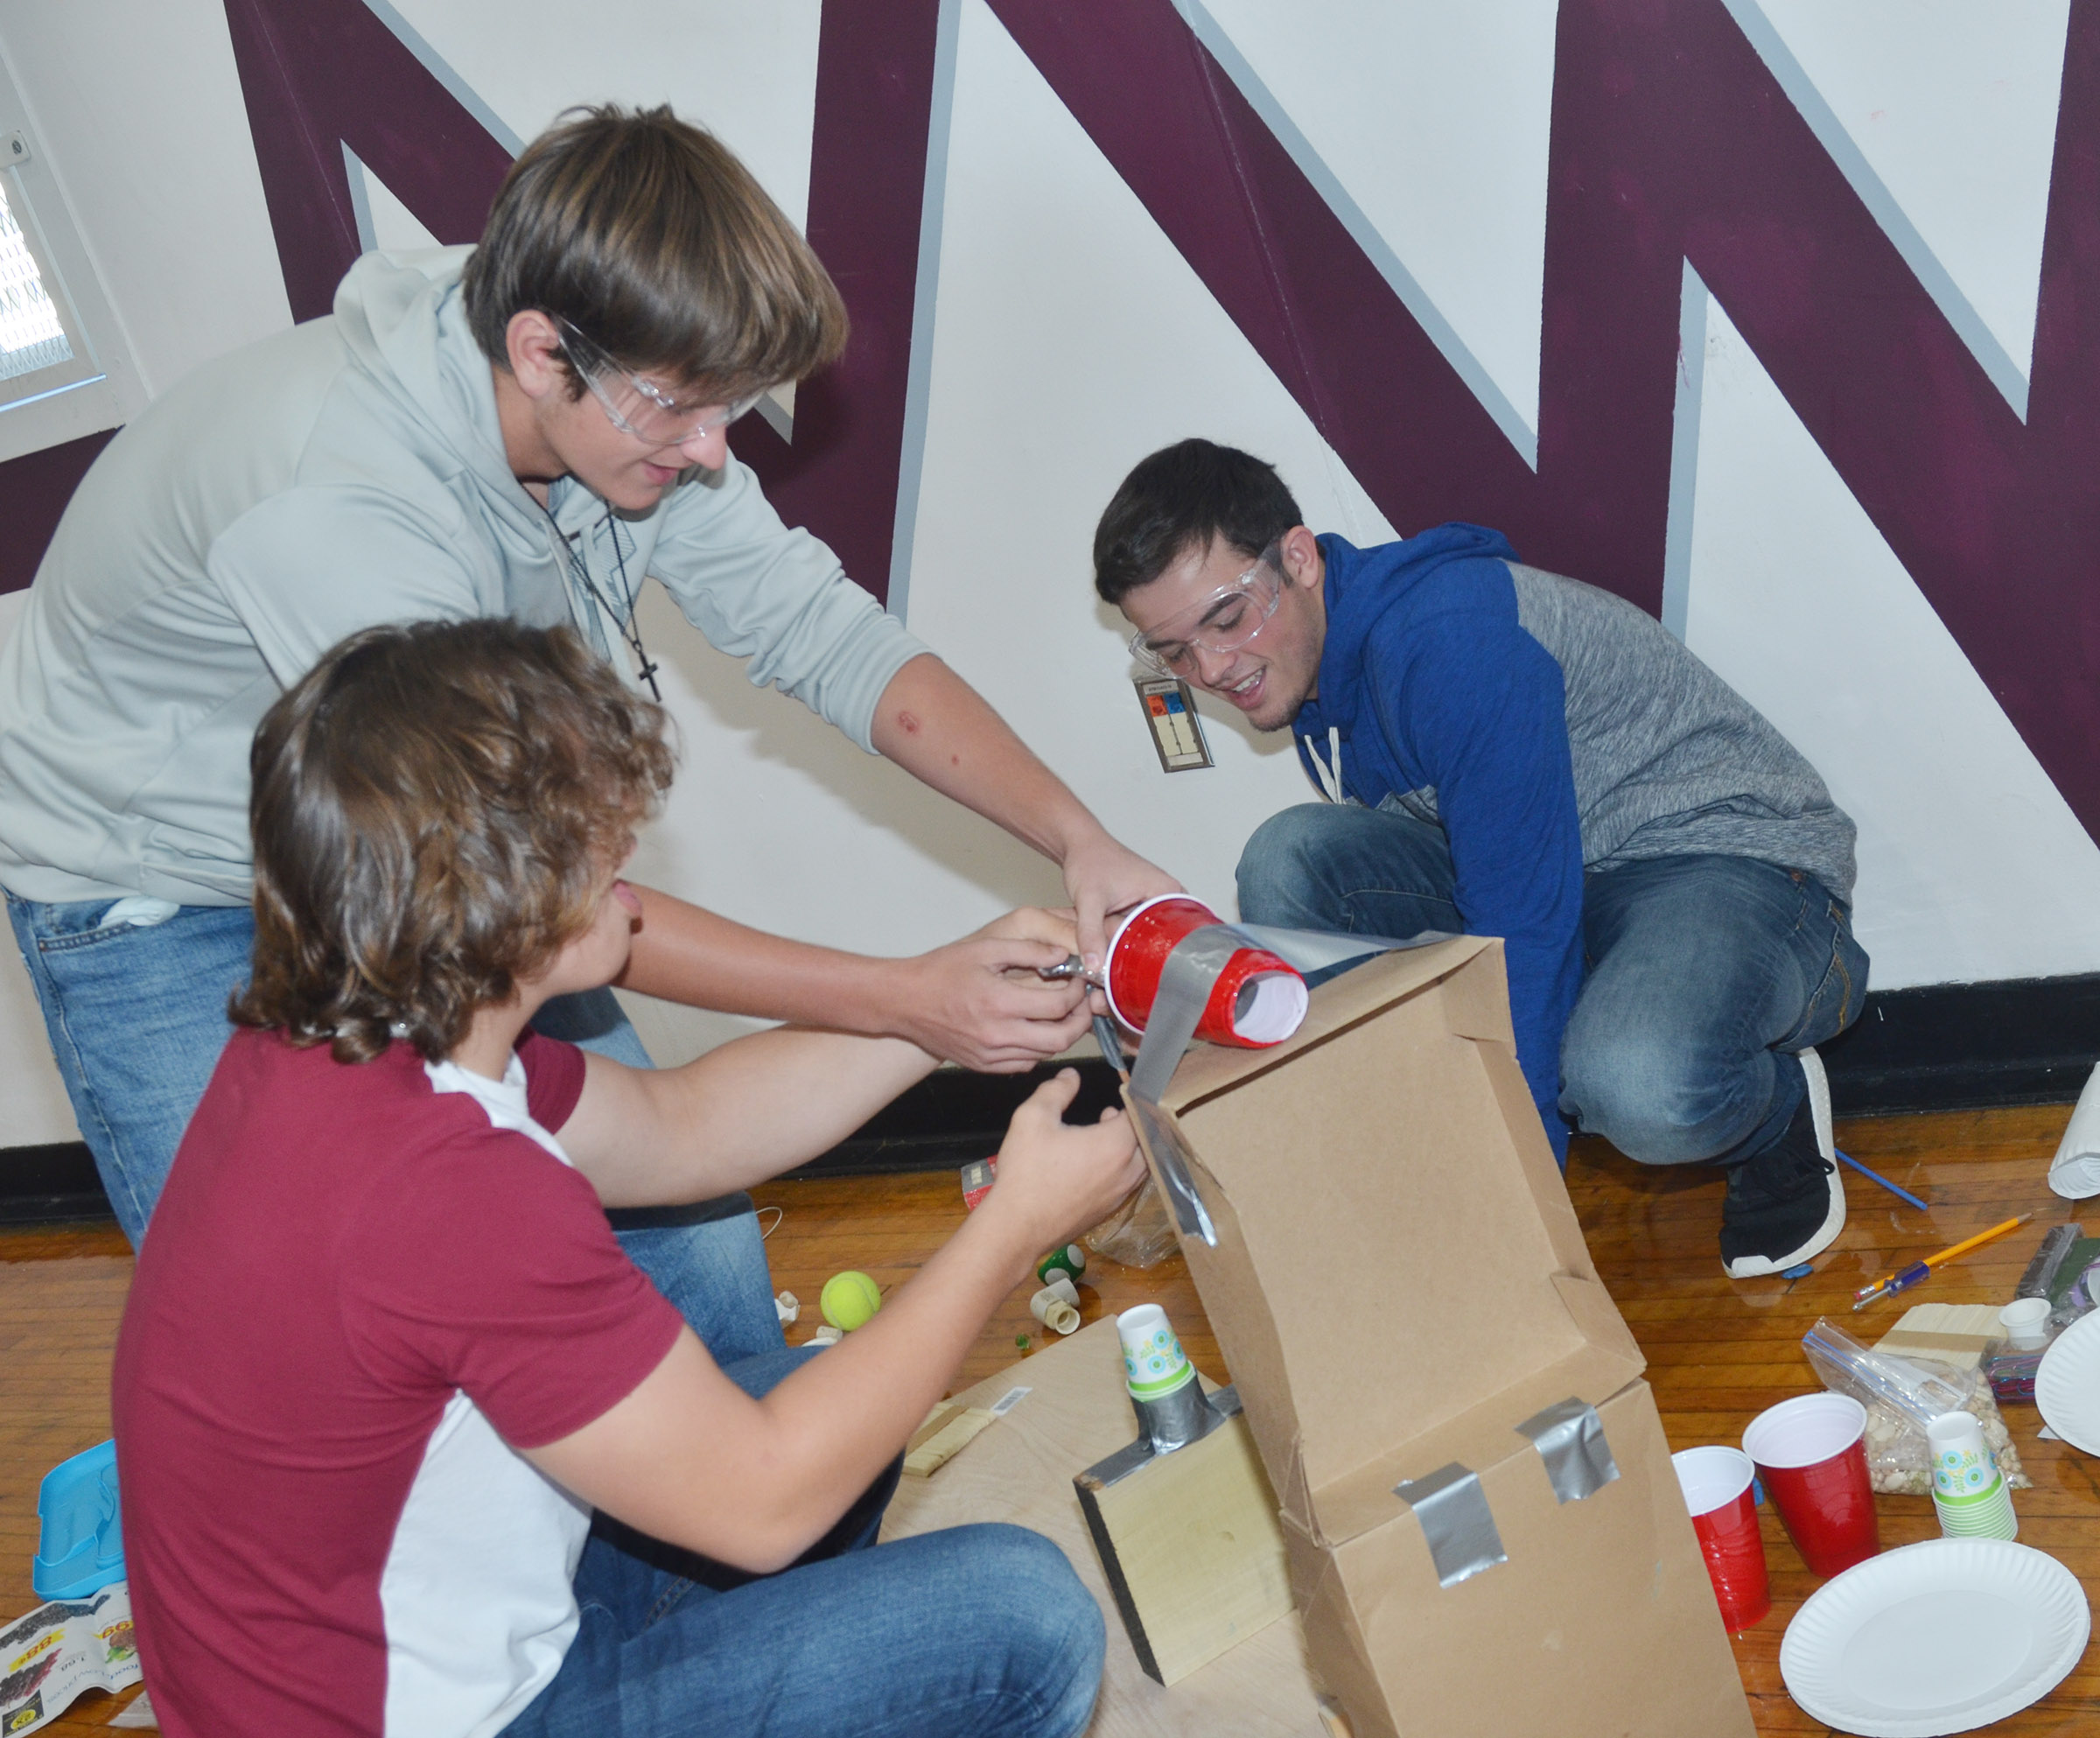 From left, CHS juniors Treyce Mattingly, Myles Murrell and Ryan Kearney build their Rube Goldberg machine in the design build competition.